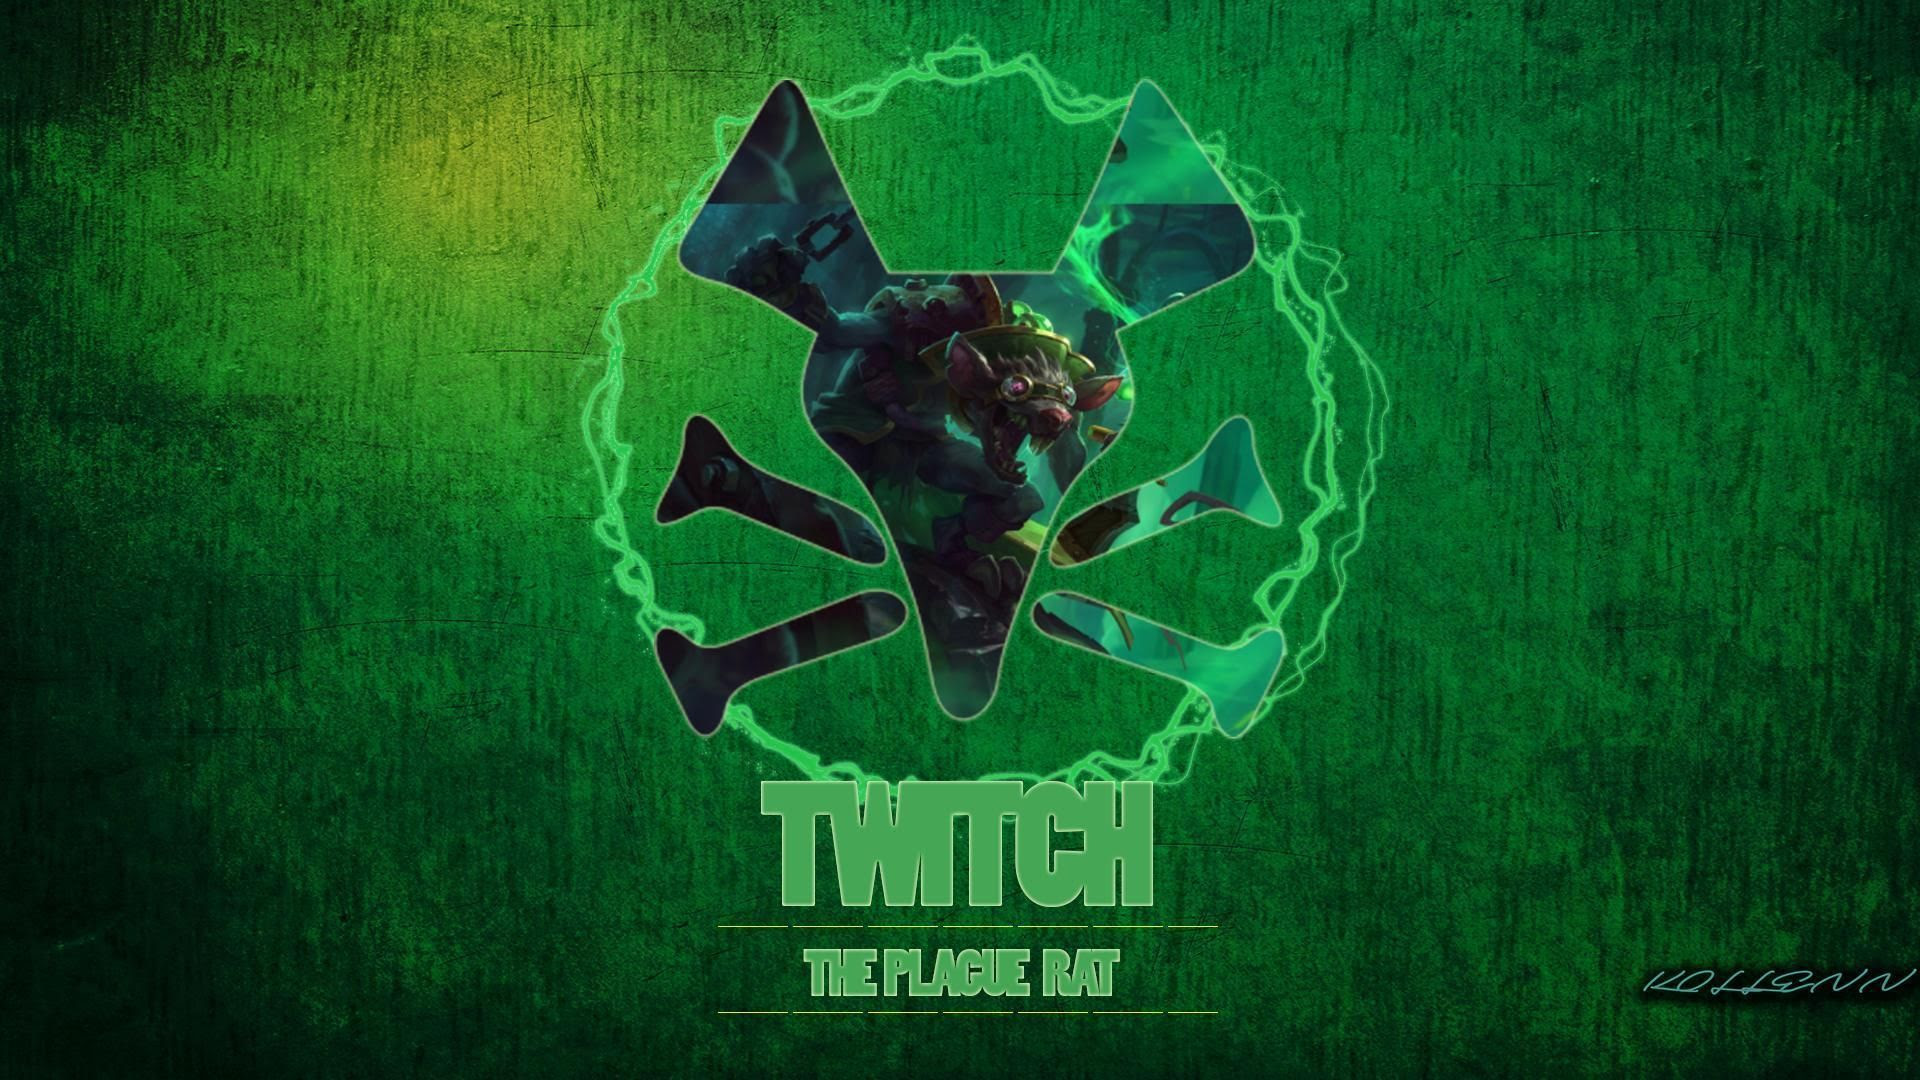 Twitch Hd Wallpaper Posted By Christopher Simpson